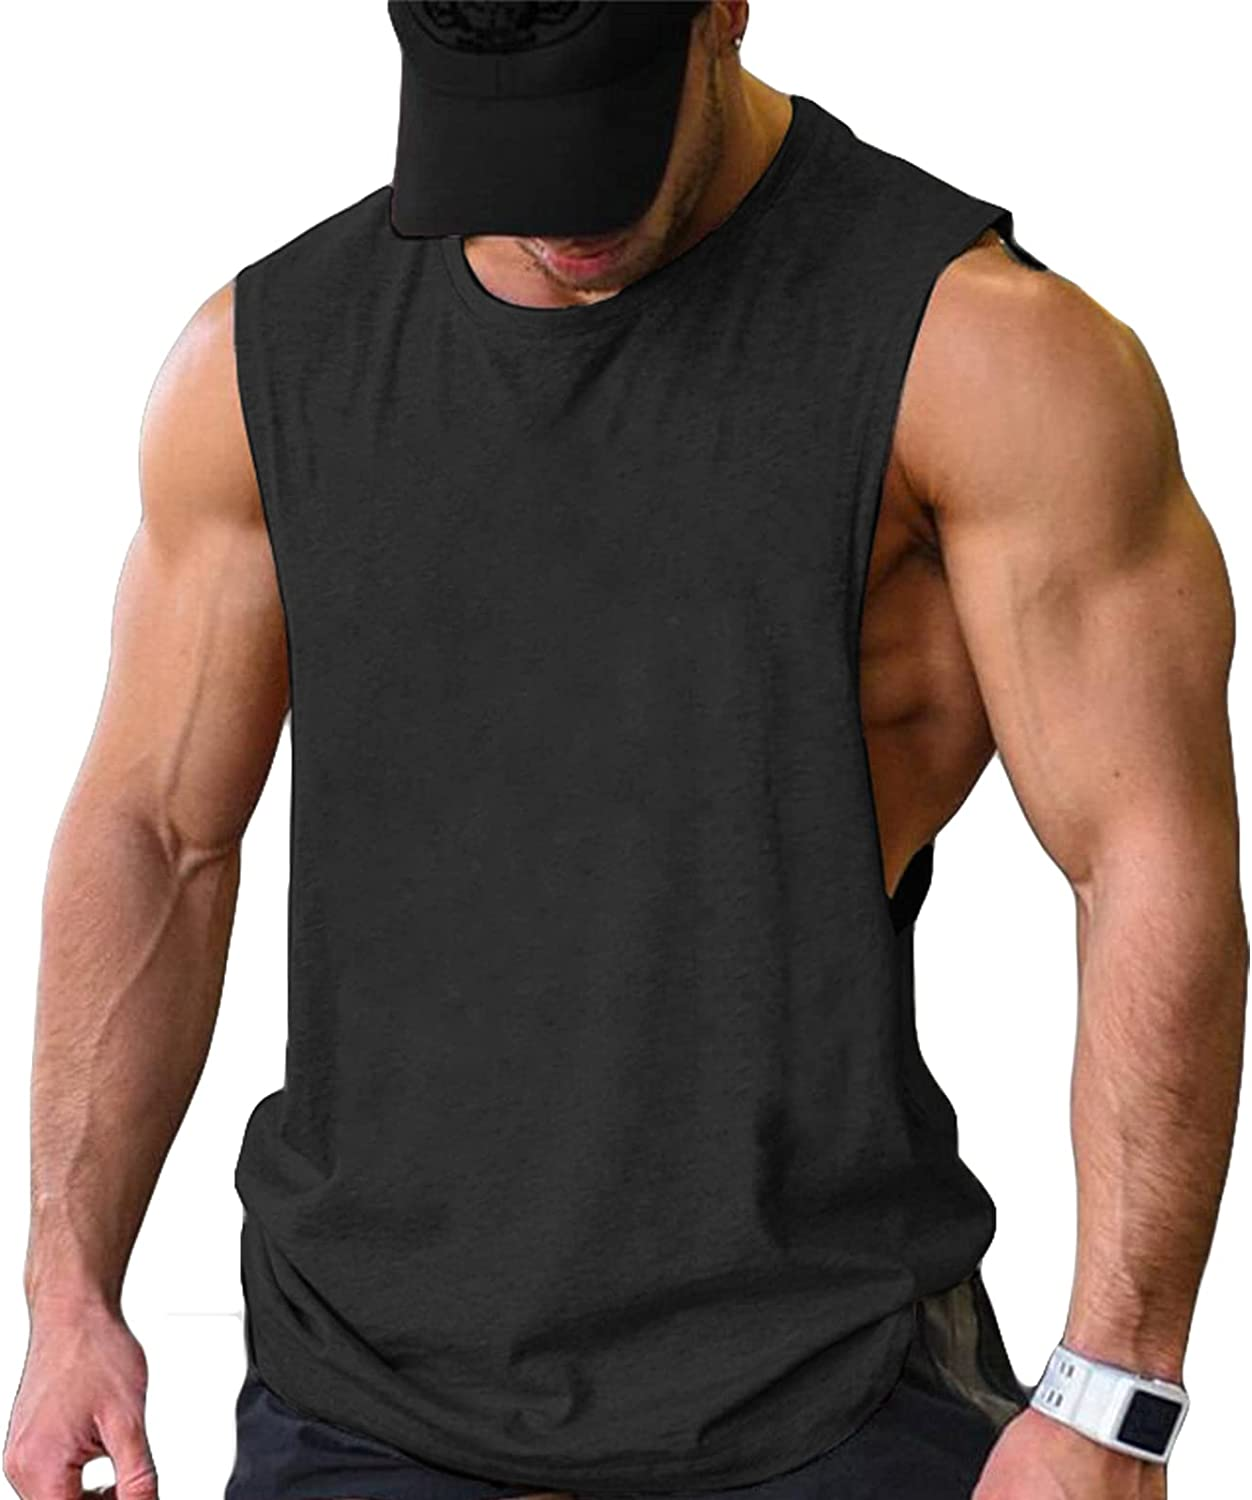 COOFANDY Men Workout Tank Top 2 Pack Gym Bodybuilding Sleeveless Muscle T Shirts